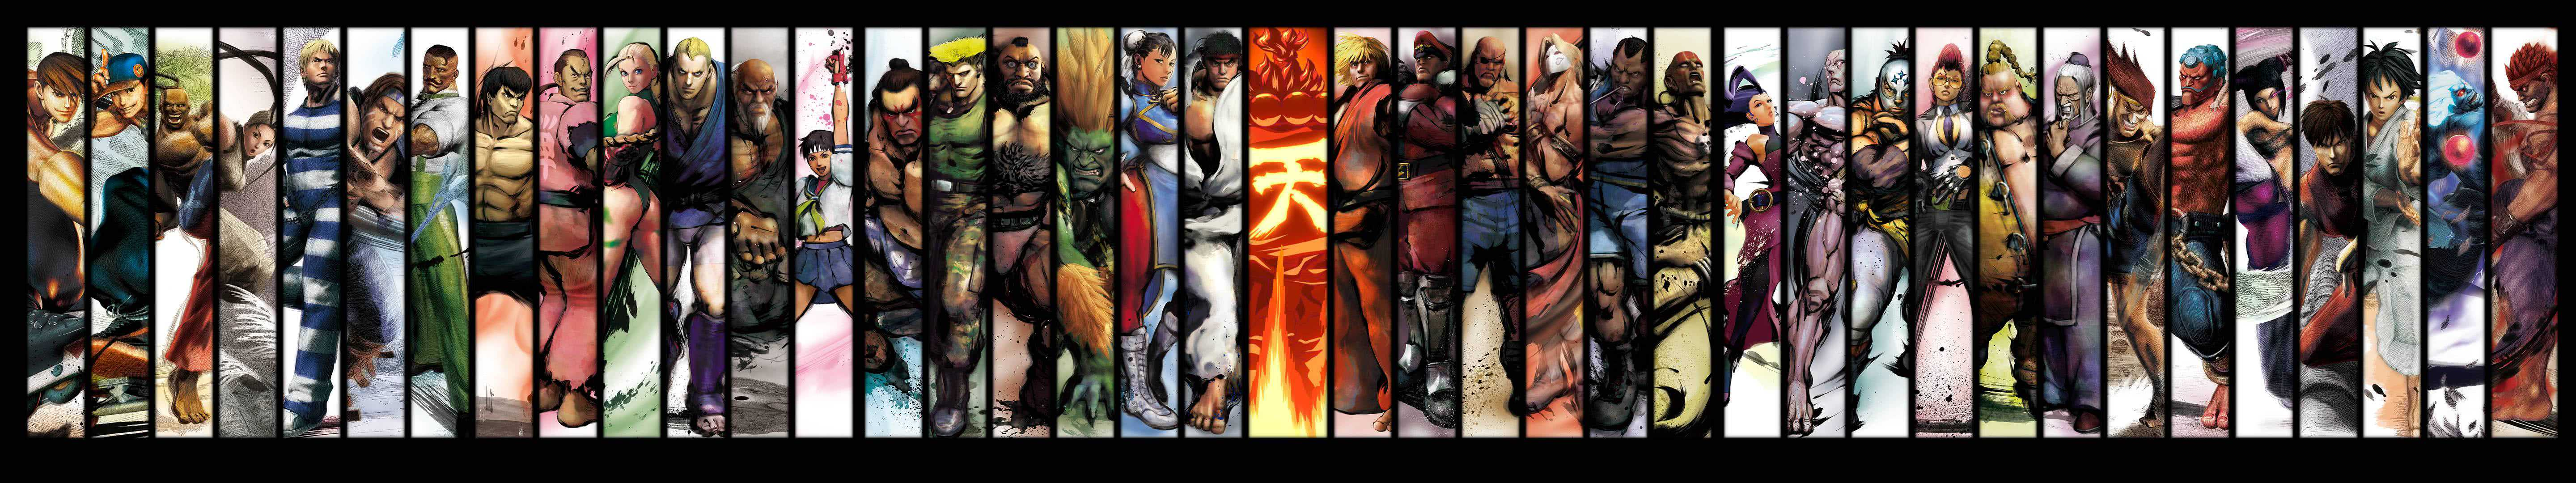 street fighter chracters triple monitor wallpaper